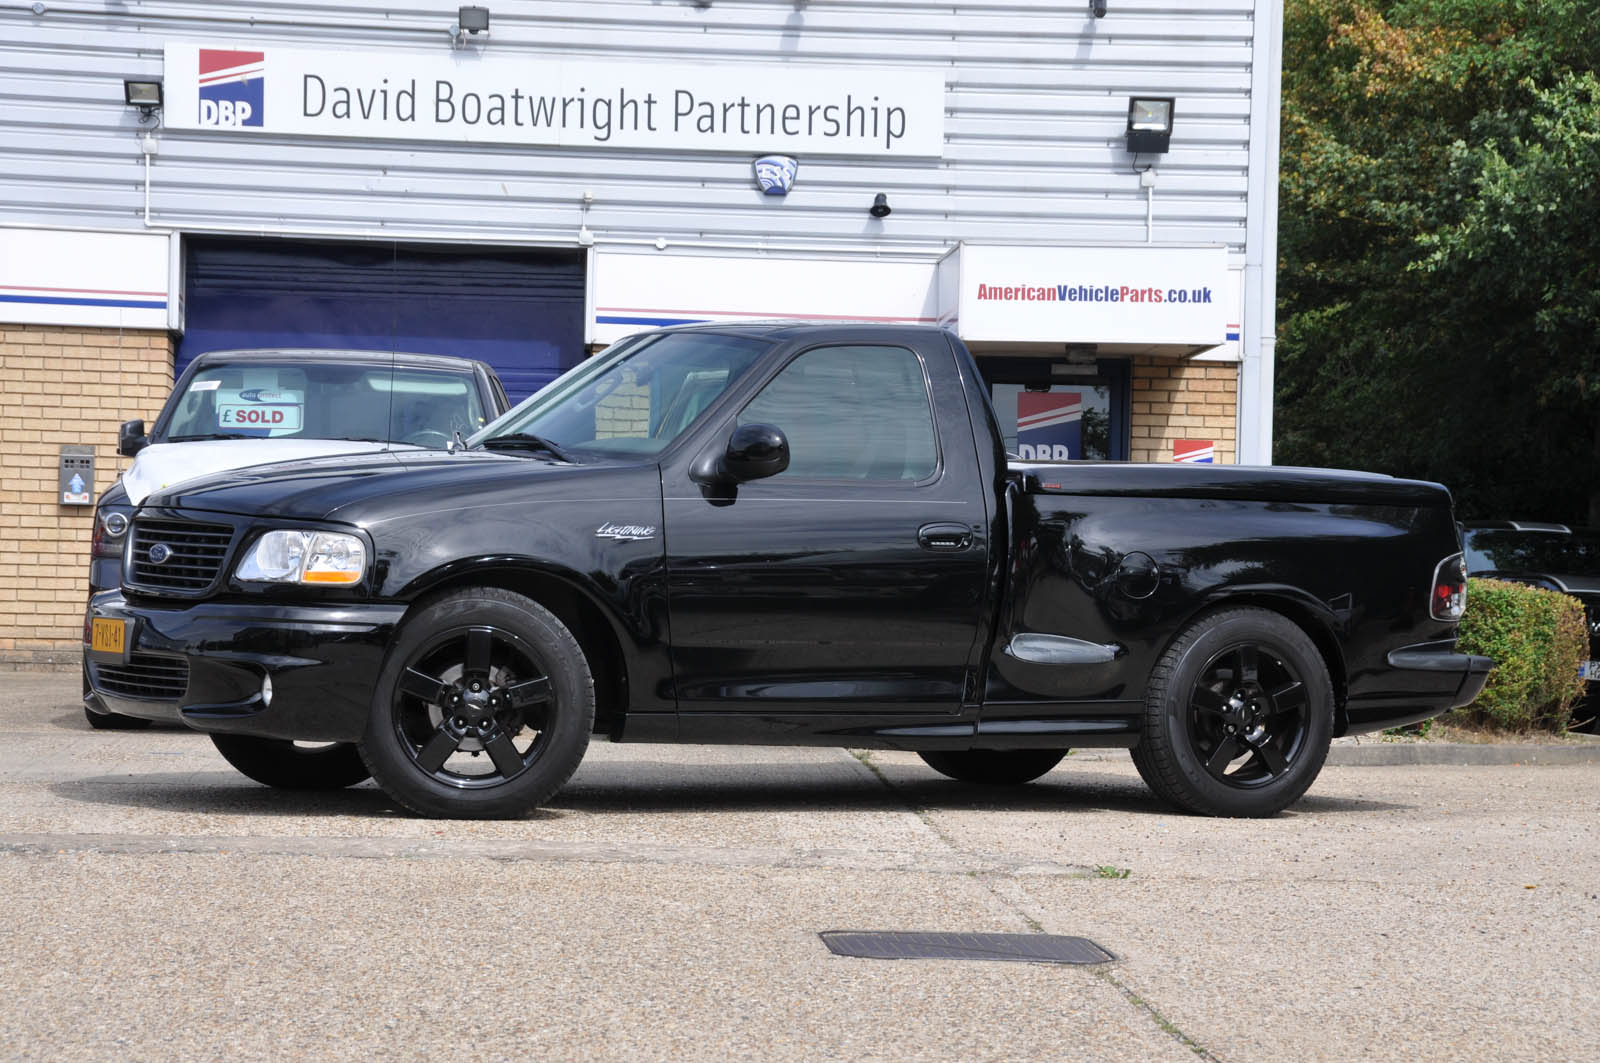 2004 ford f150 lightning svt david boatwright partnership dodge ram f 150 challenger. Black Bedroom Furniture Sets. Home Design Ideas